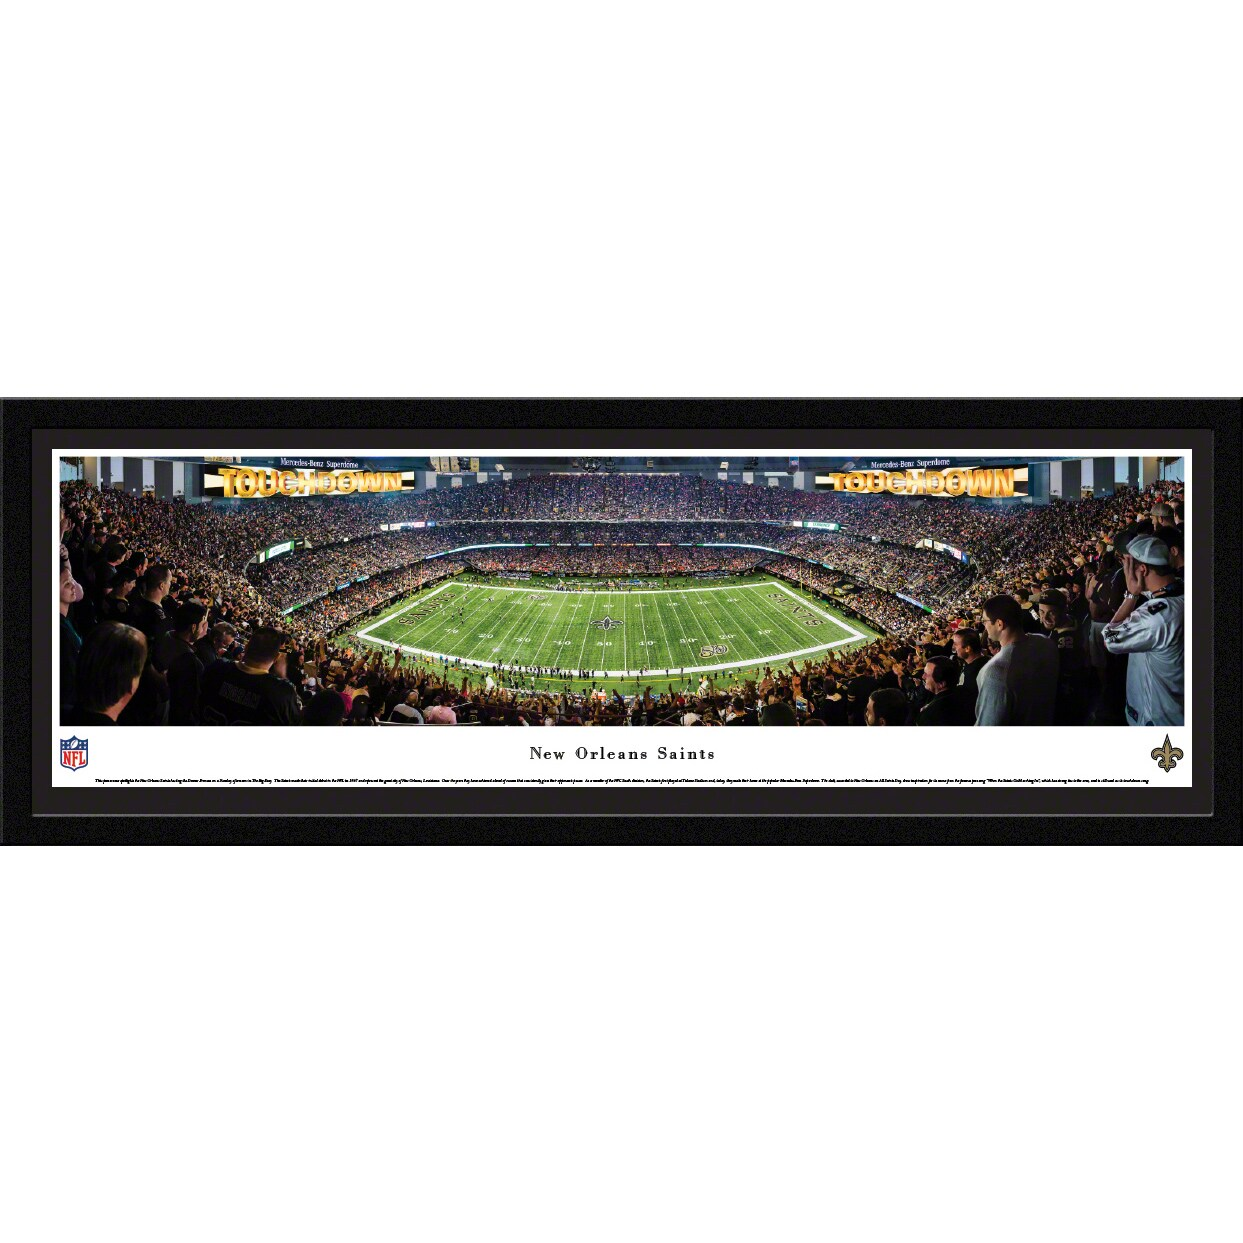 "New Orleans Saints 16"" x 42"" Select Frame Panoramic Photo"